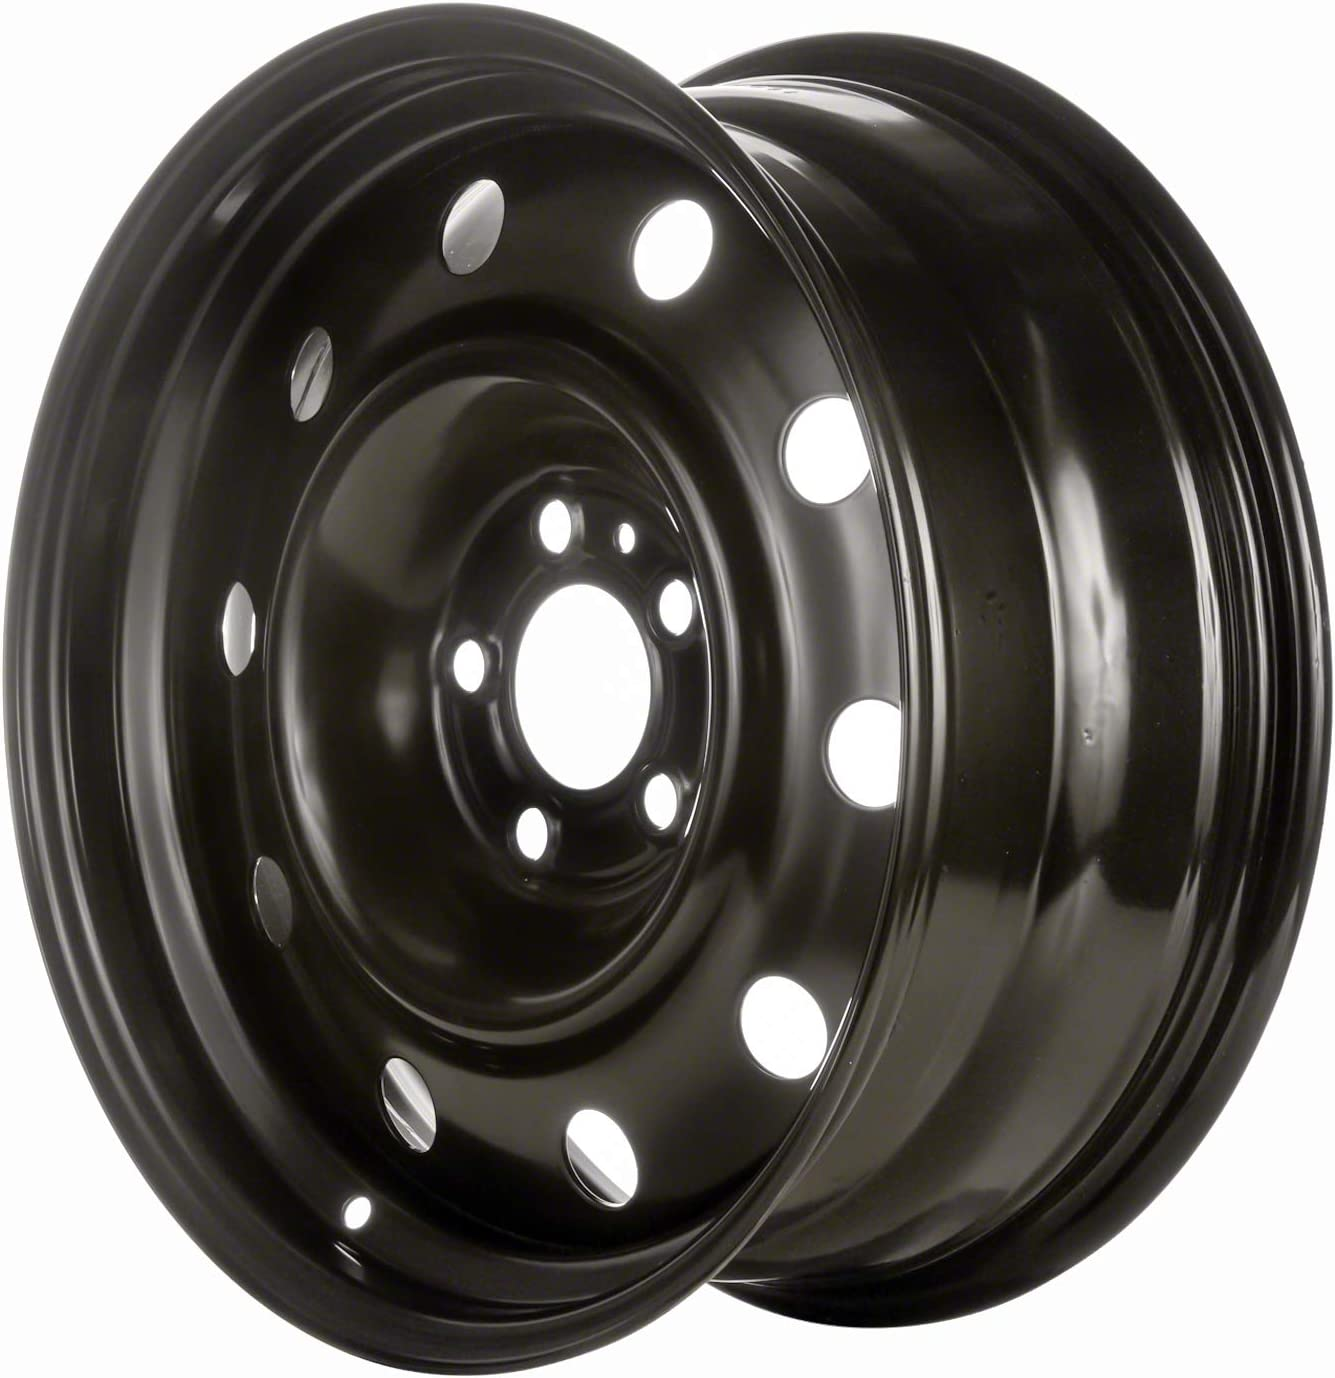 Multiple Manufactures STL02240U45 Black Wheel with Painted and Meets All Federal Motor Safety Standards 17 x 7. inches //5 x 115 mm, 0 mm Offset